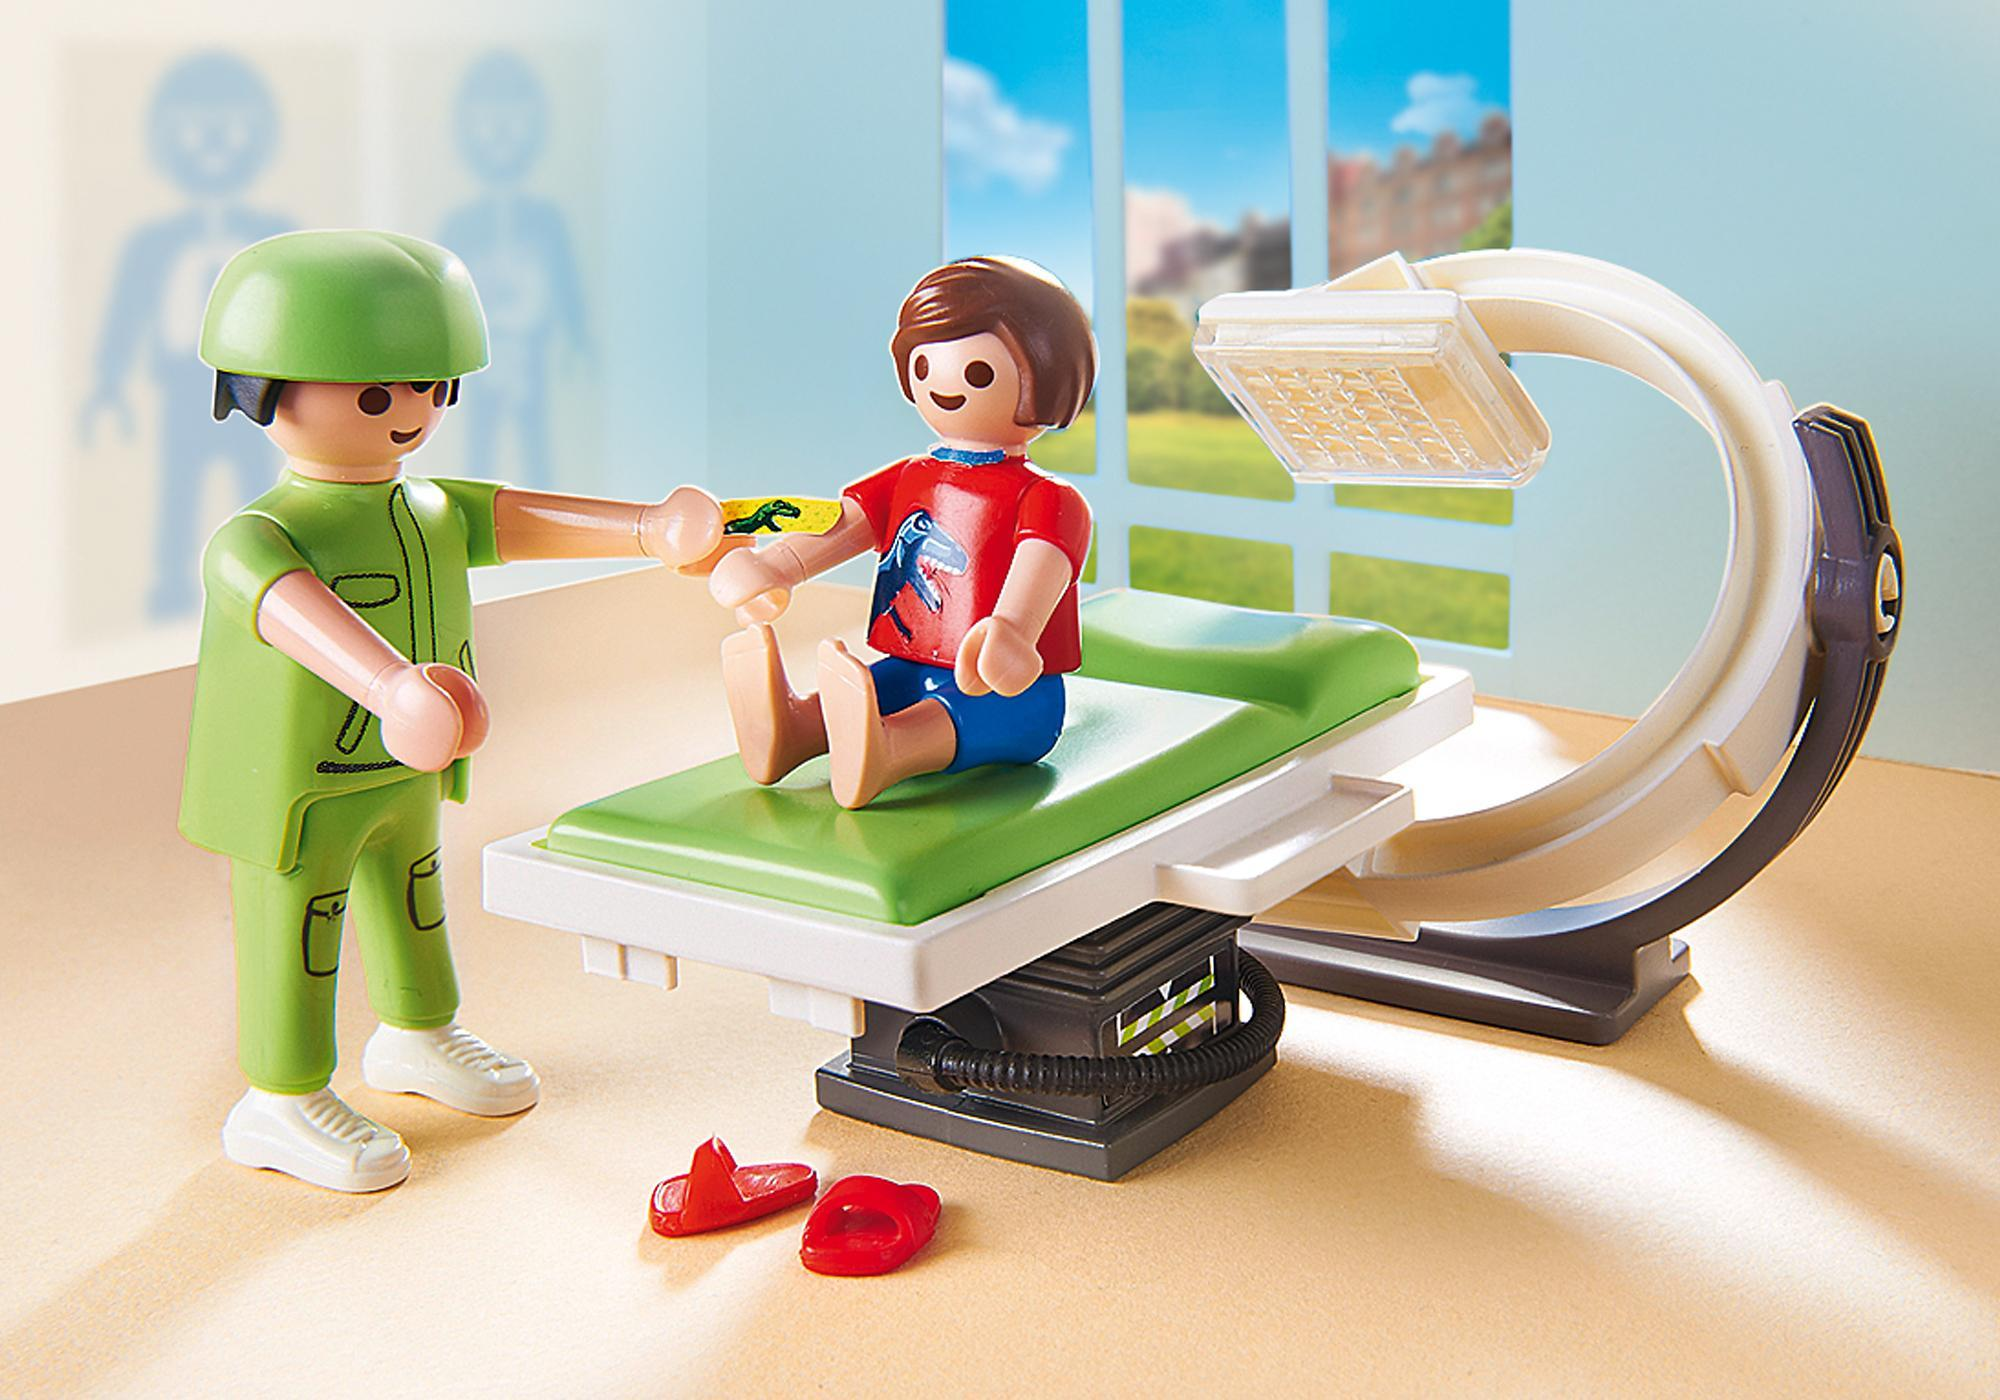 http://media.playmobil.com/i/playmobil/6659_product_extra1